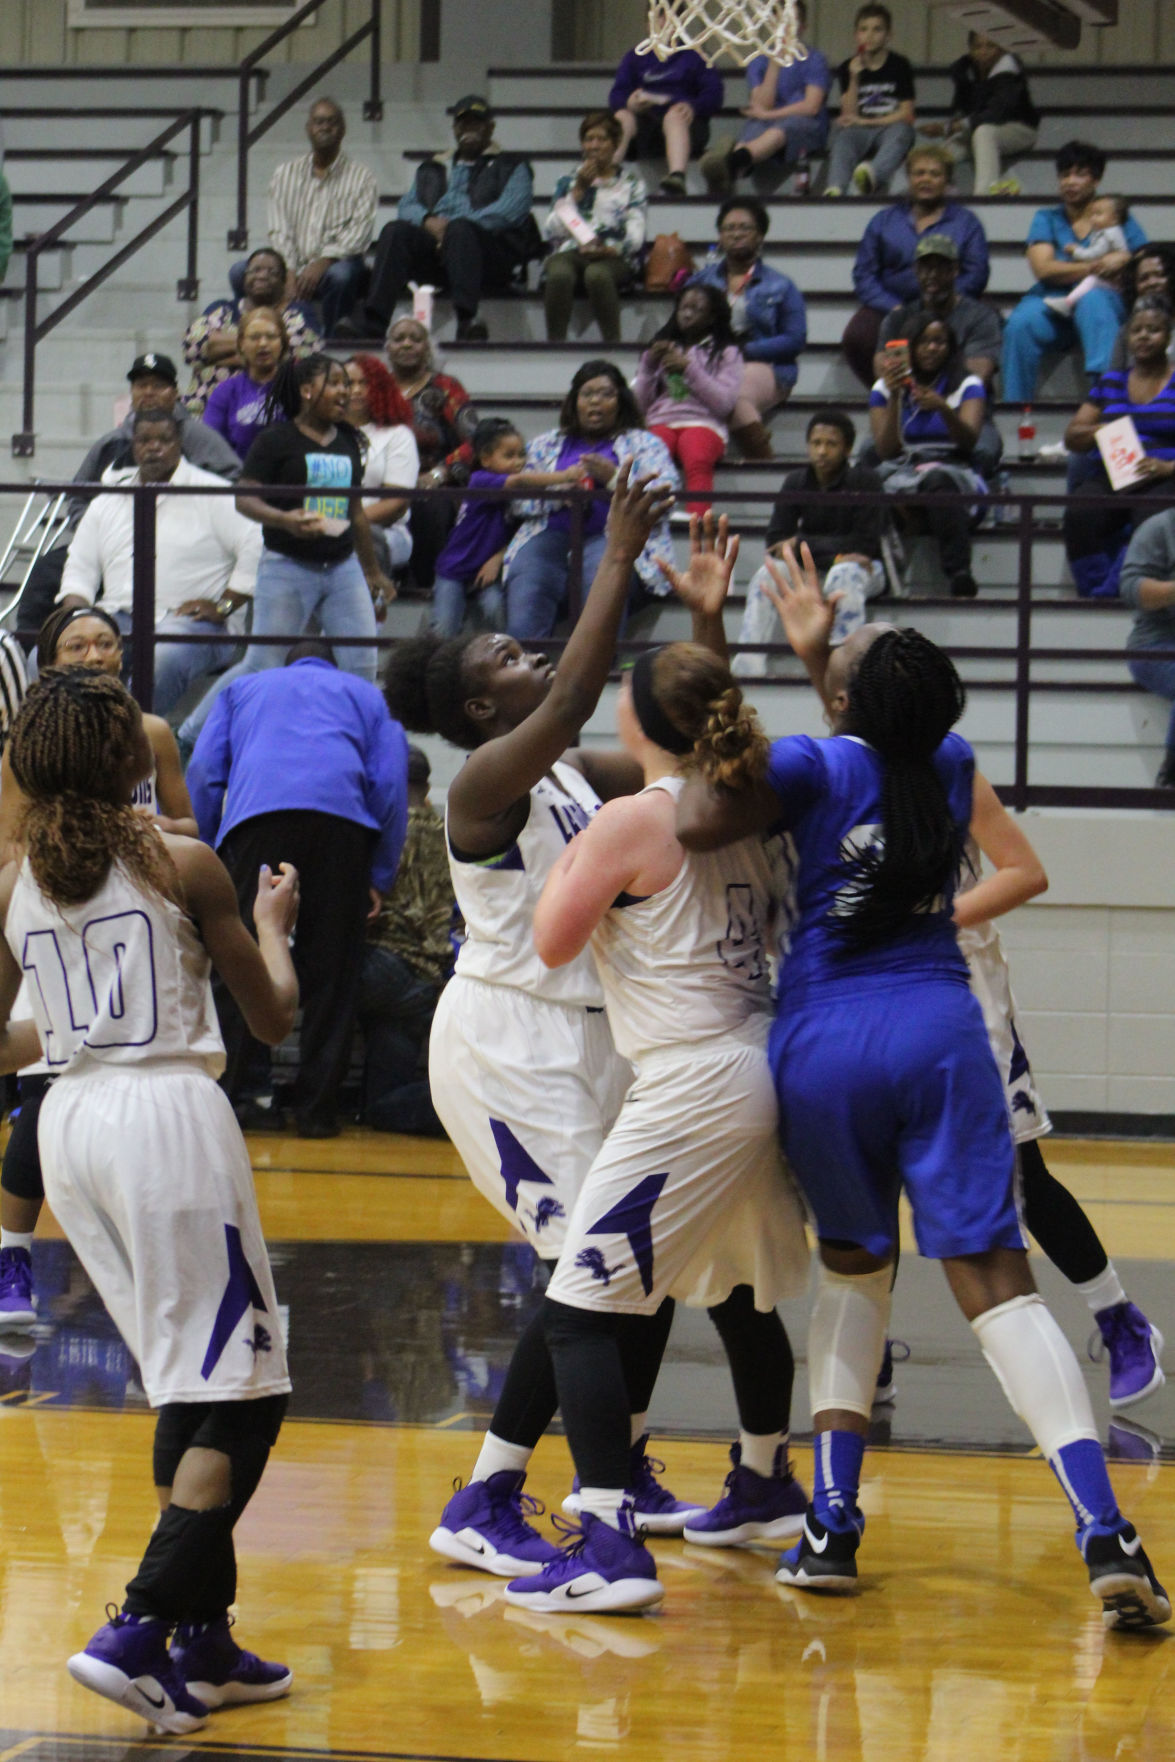 Lady Lions vs Strong